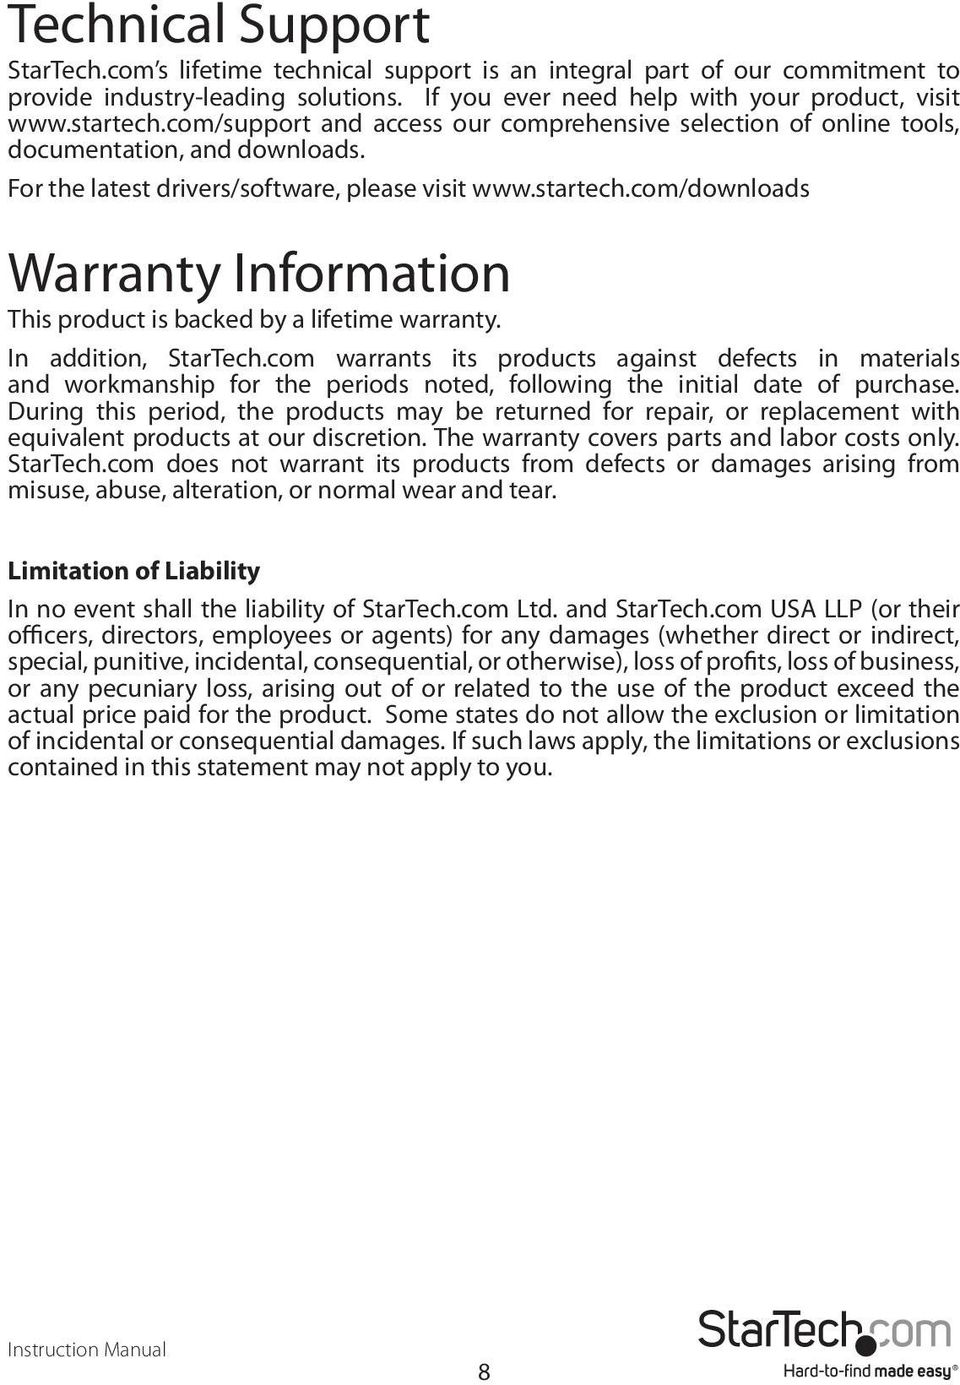 com/downloads Warranty Information This product is backed by a lifetime warranty. In addition, StarTech.